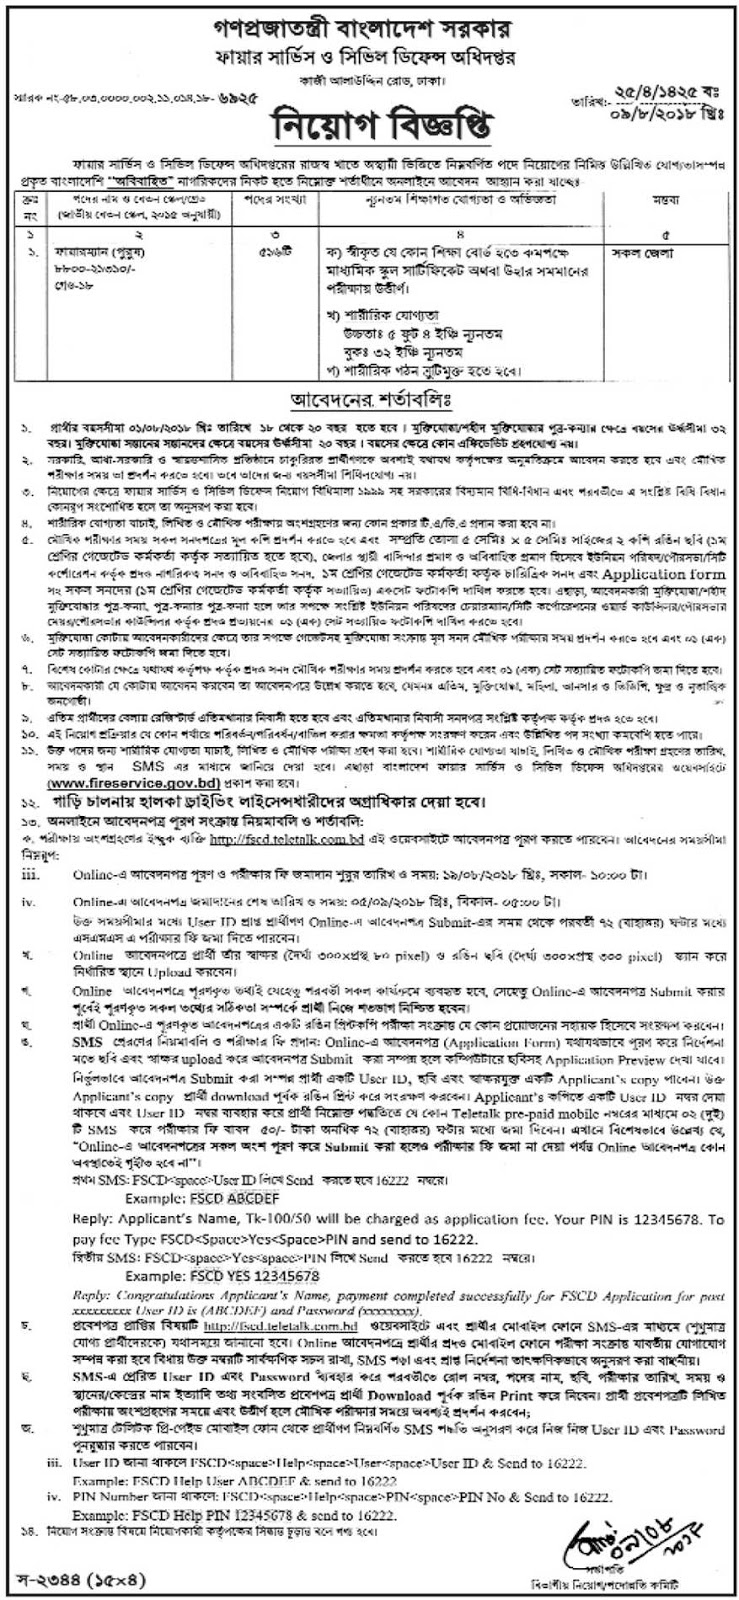 Bangladesh Fire Service and Civil Defense (BFSCD) Job Circular 2018